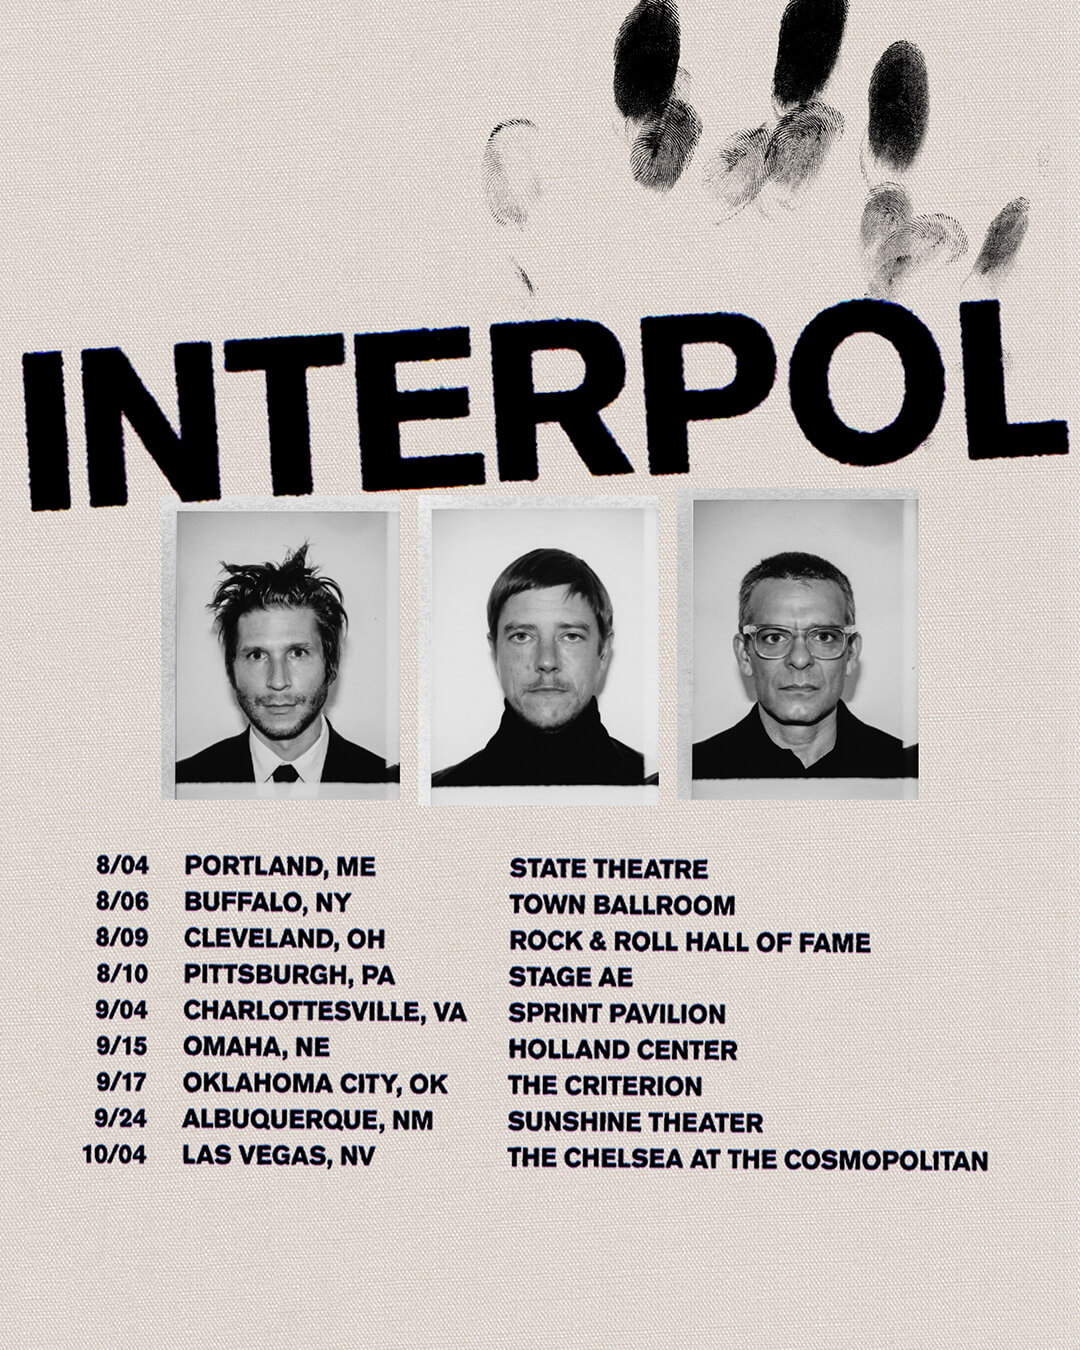 Interpol – Additional North American 2019 Dates